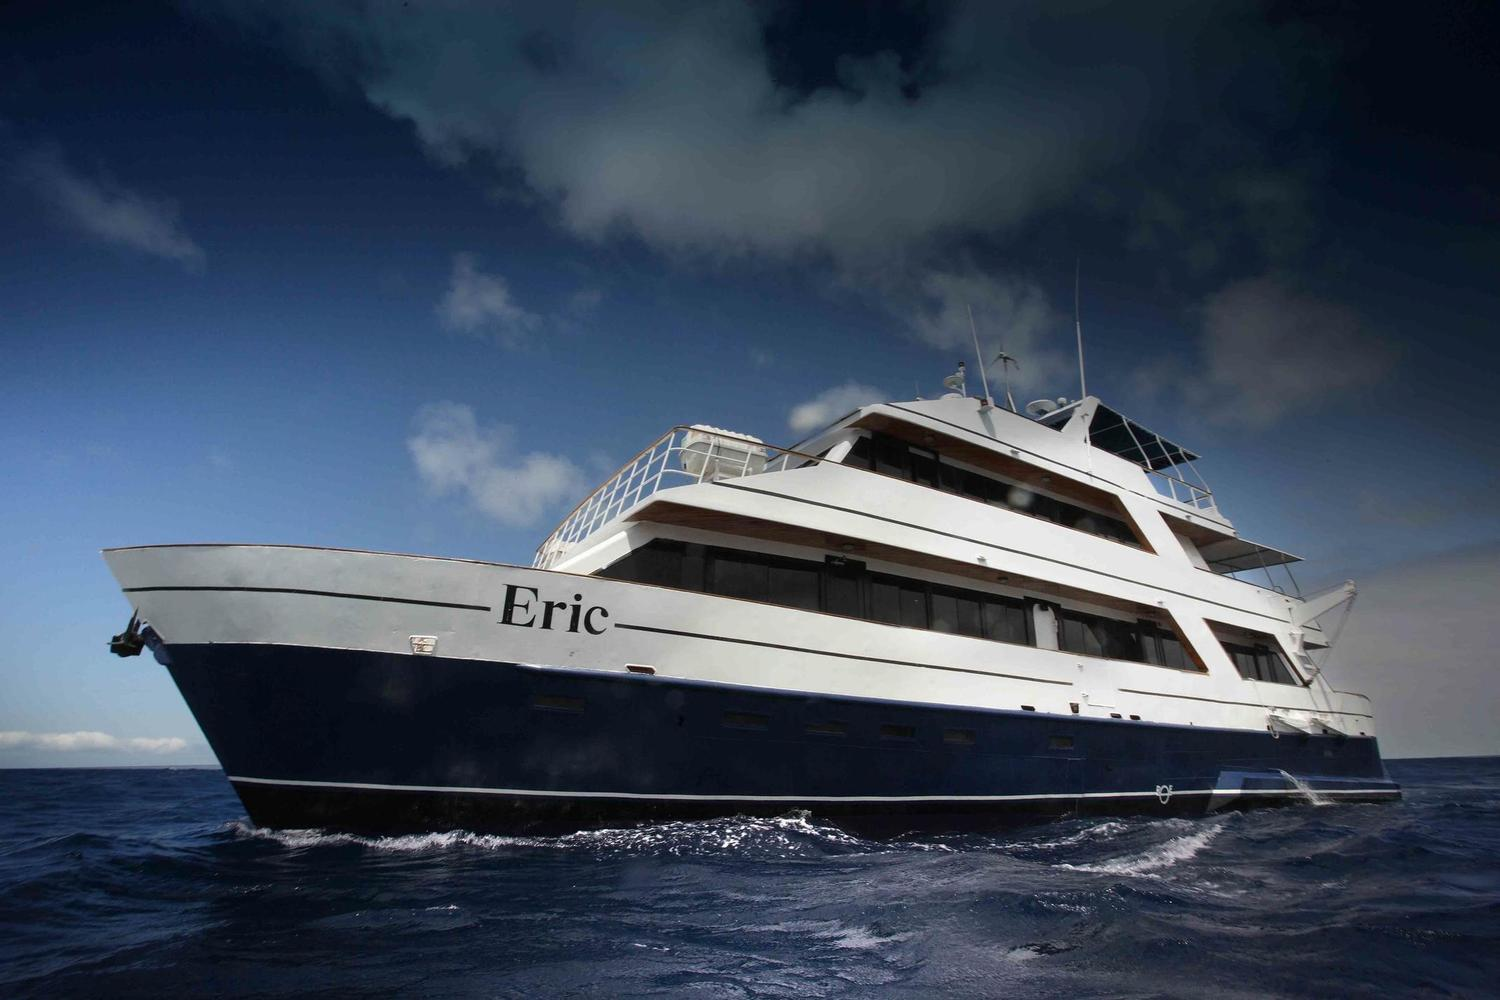 The first class Galapagos Islands cruise, Eric.